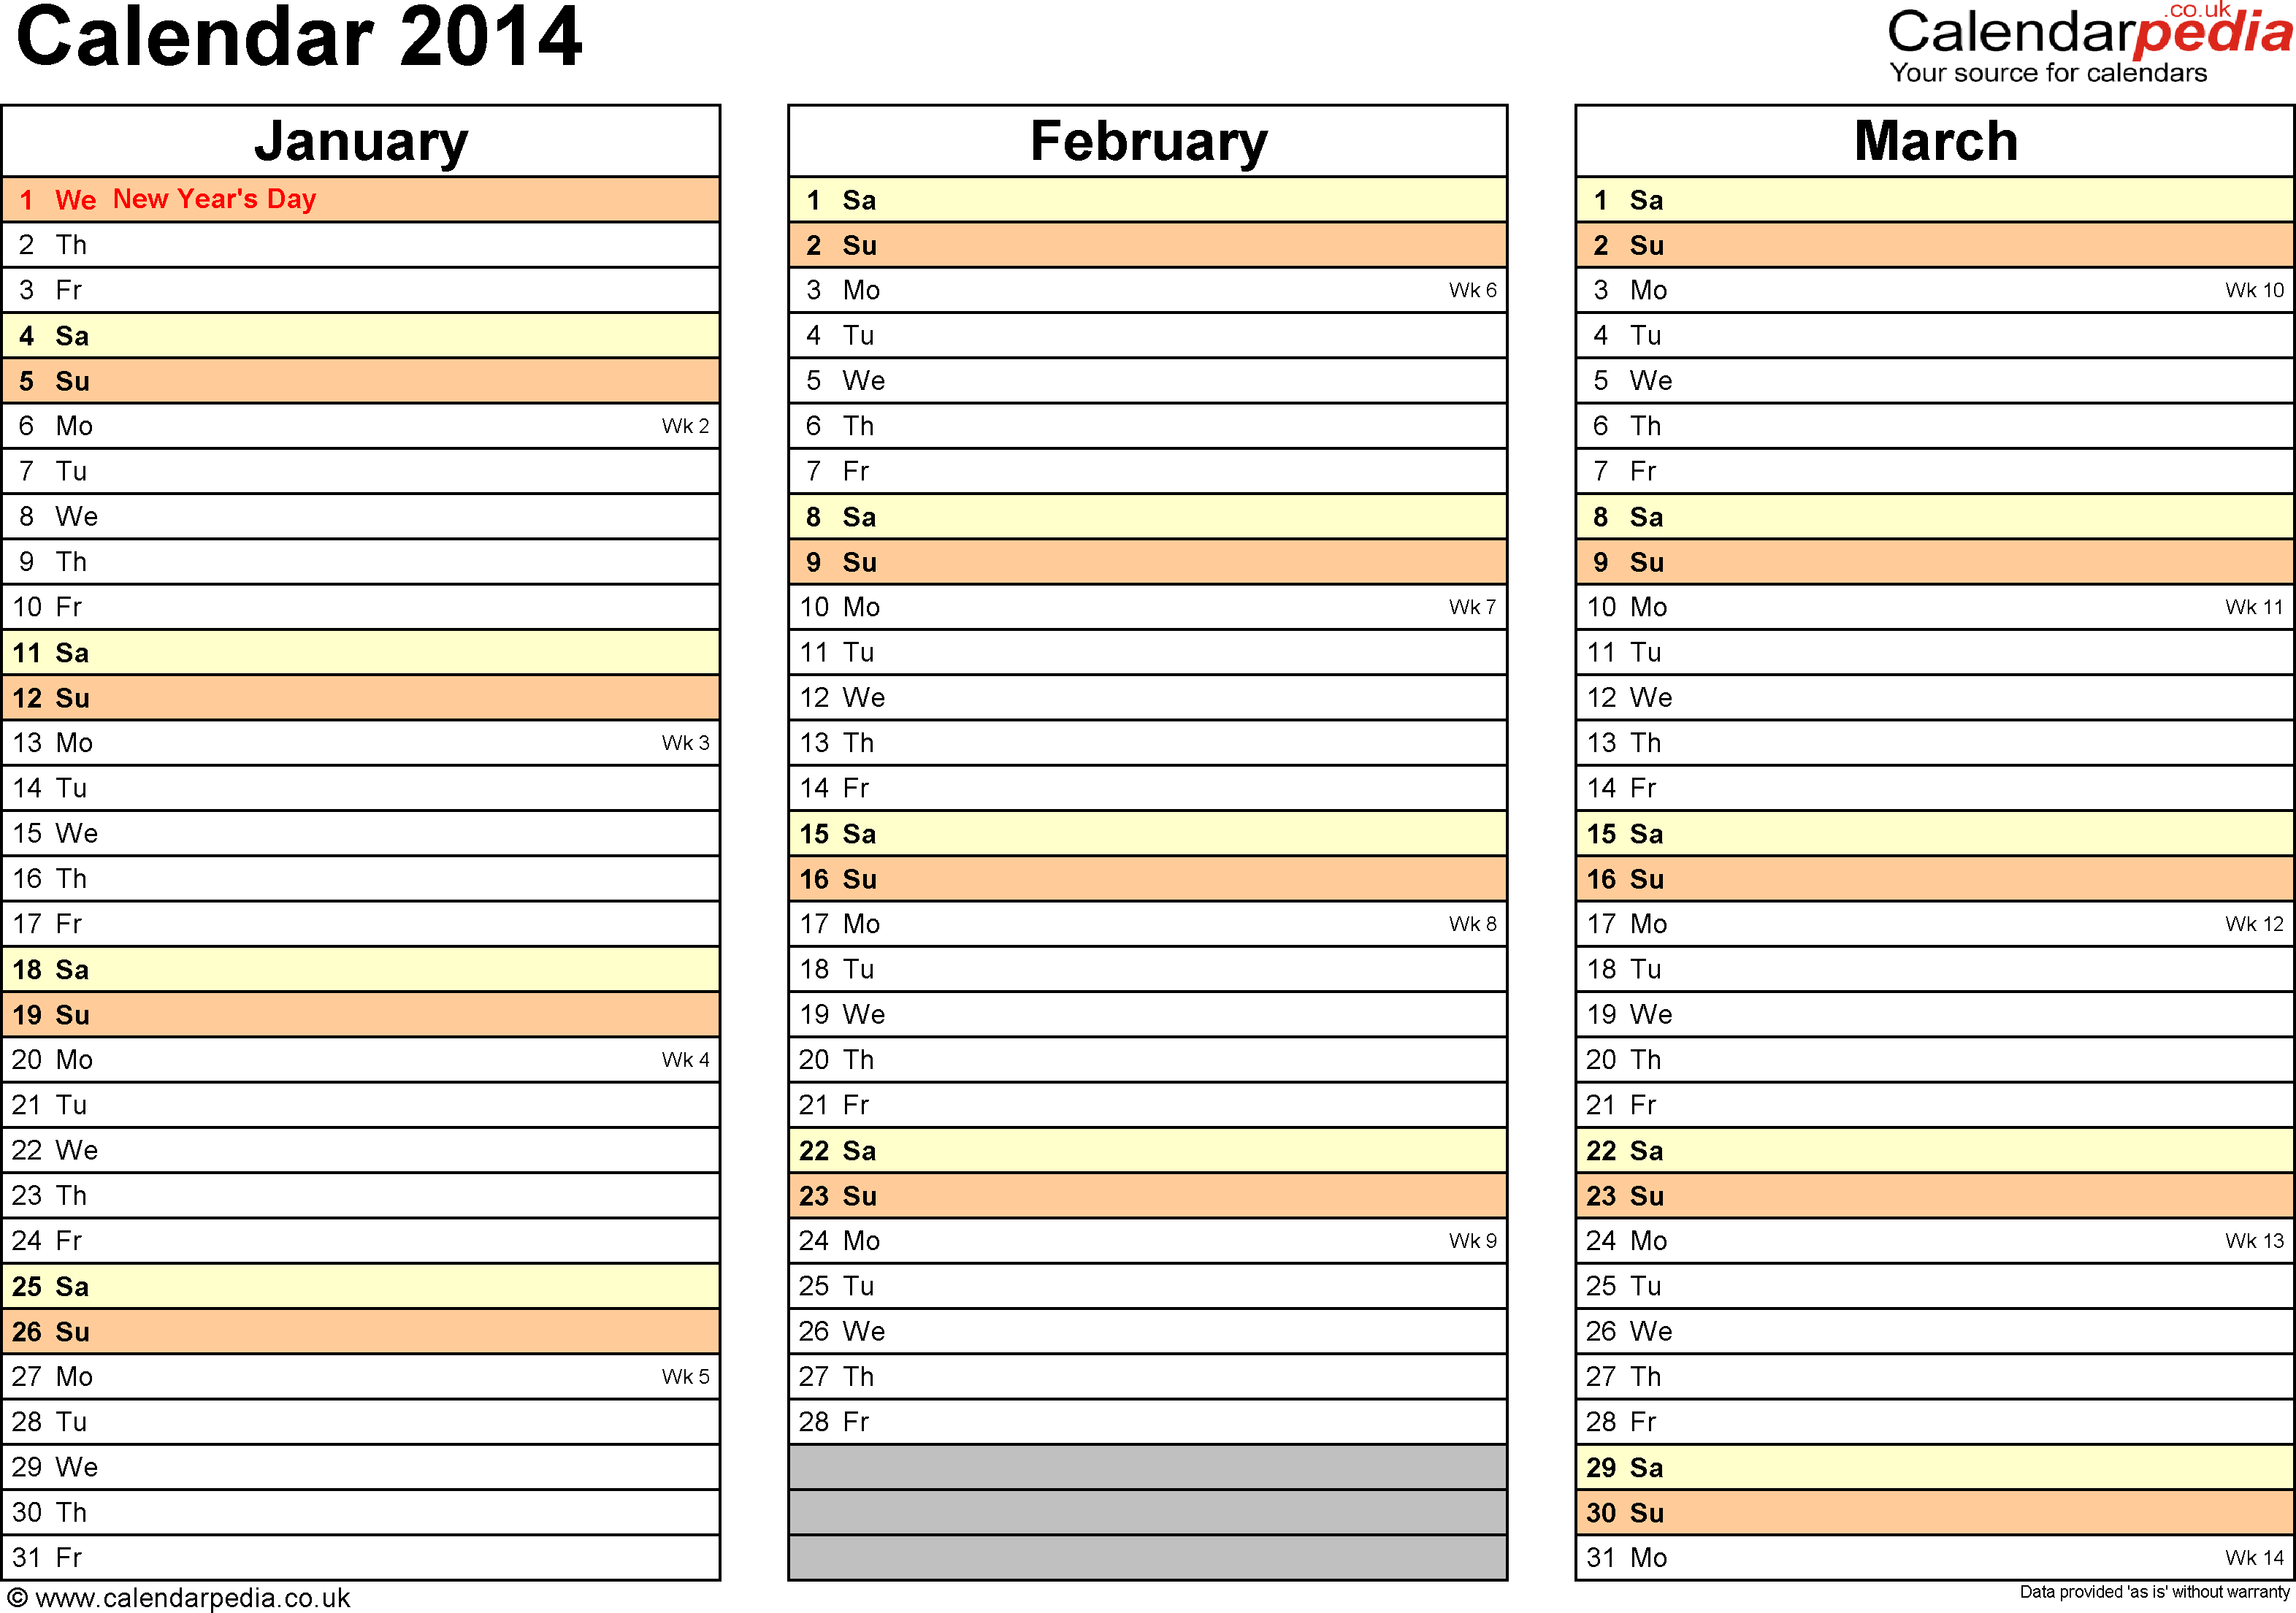 Template 6: Yearly calendar 2014 as Excel template, landscape orientation, 4 pages, months horizontally, days vertically, with UK bank holidays and week numbers